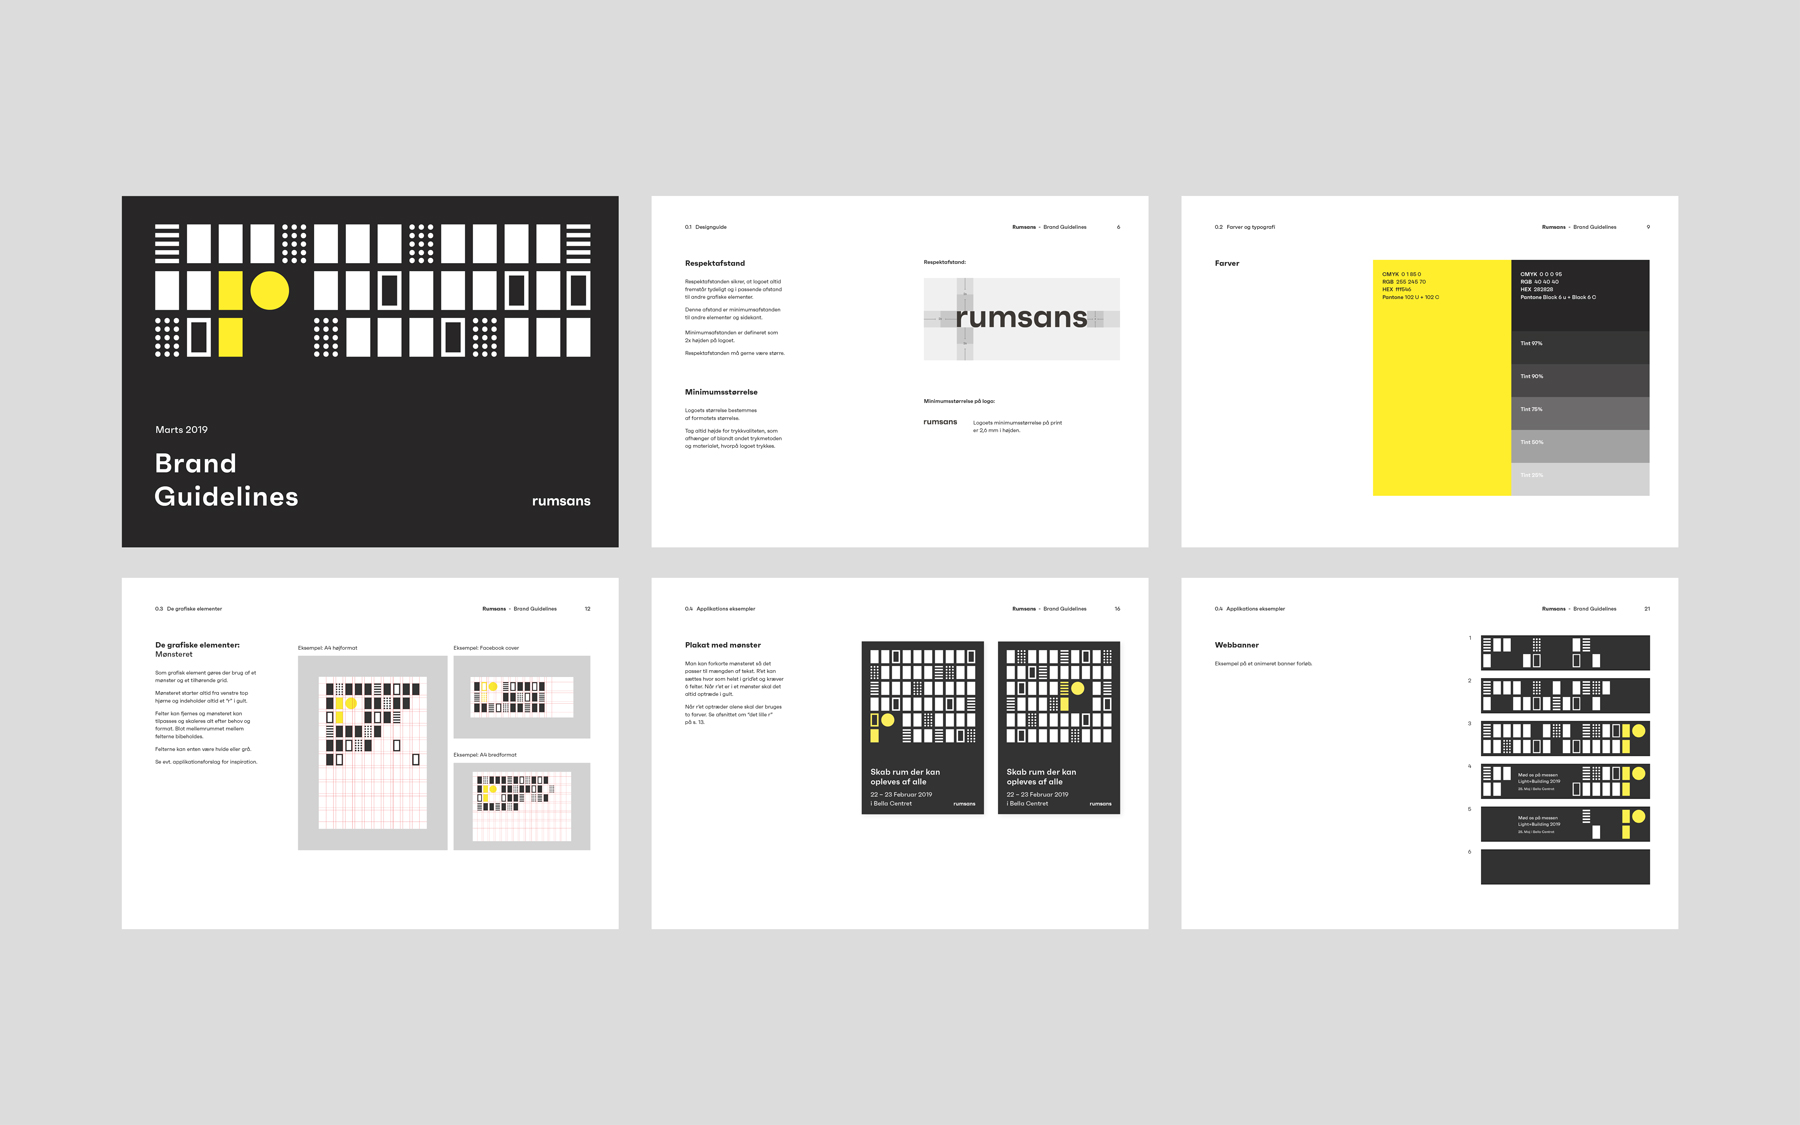 Six slides from Rumsans' brand guidelines incl. how to use the logo, what colors to use, and graphic elements.